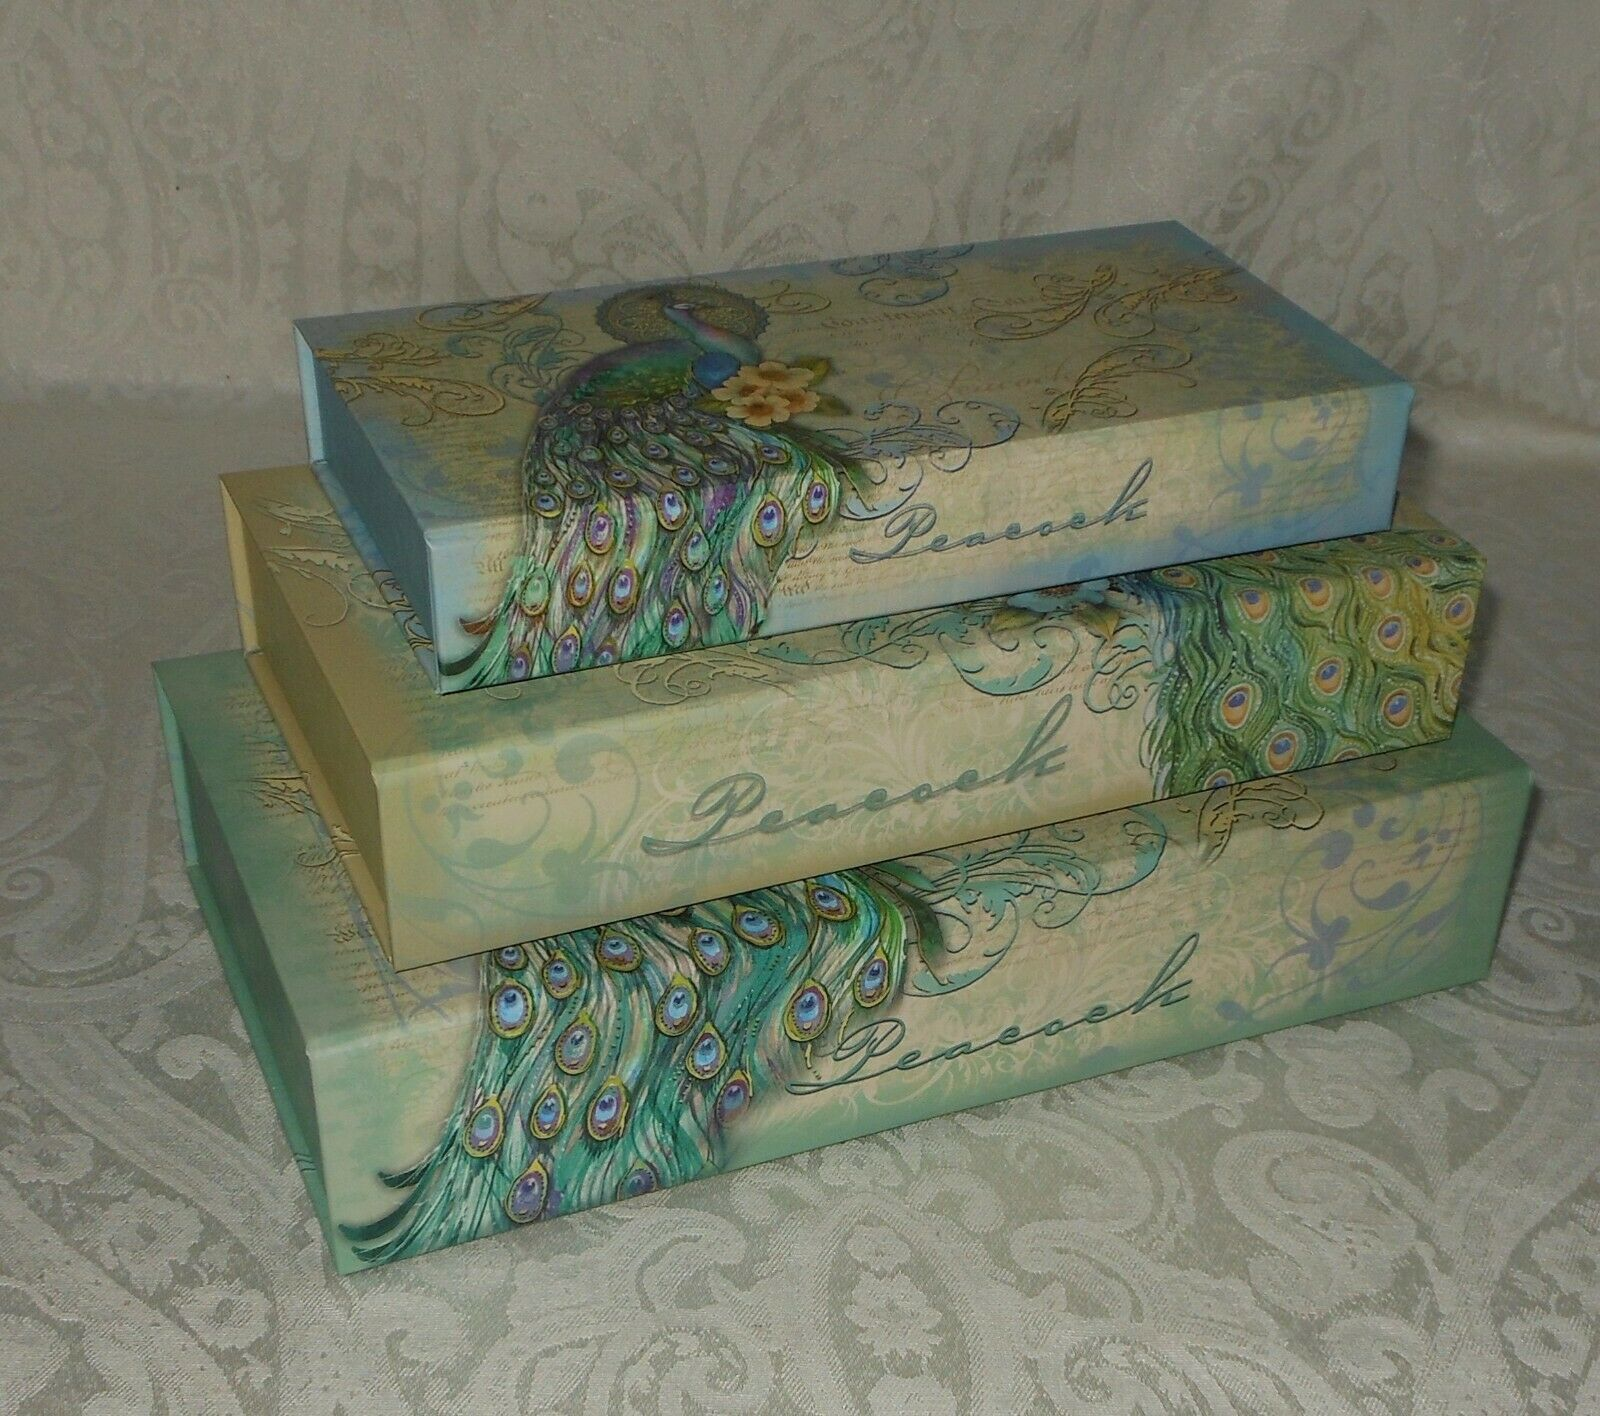 Primary image for 3 Punch Studio Vintage Teal Peacock Gift Memory Nesting Boxes NEW FREE SHIPPING